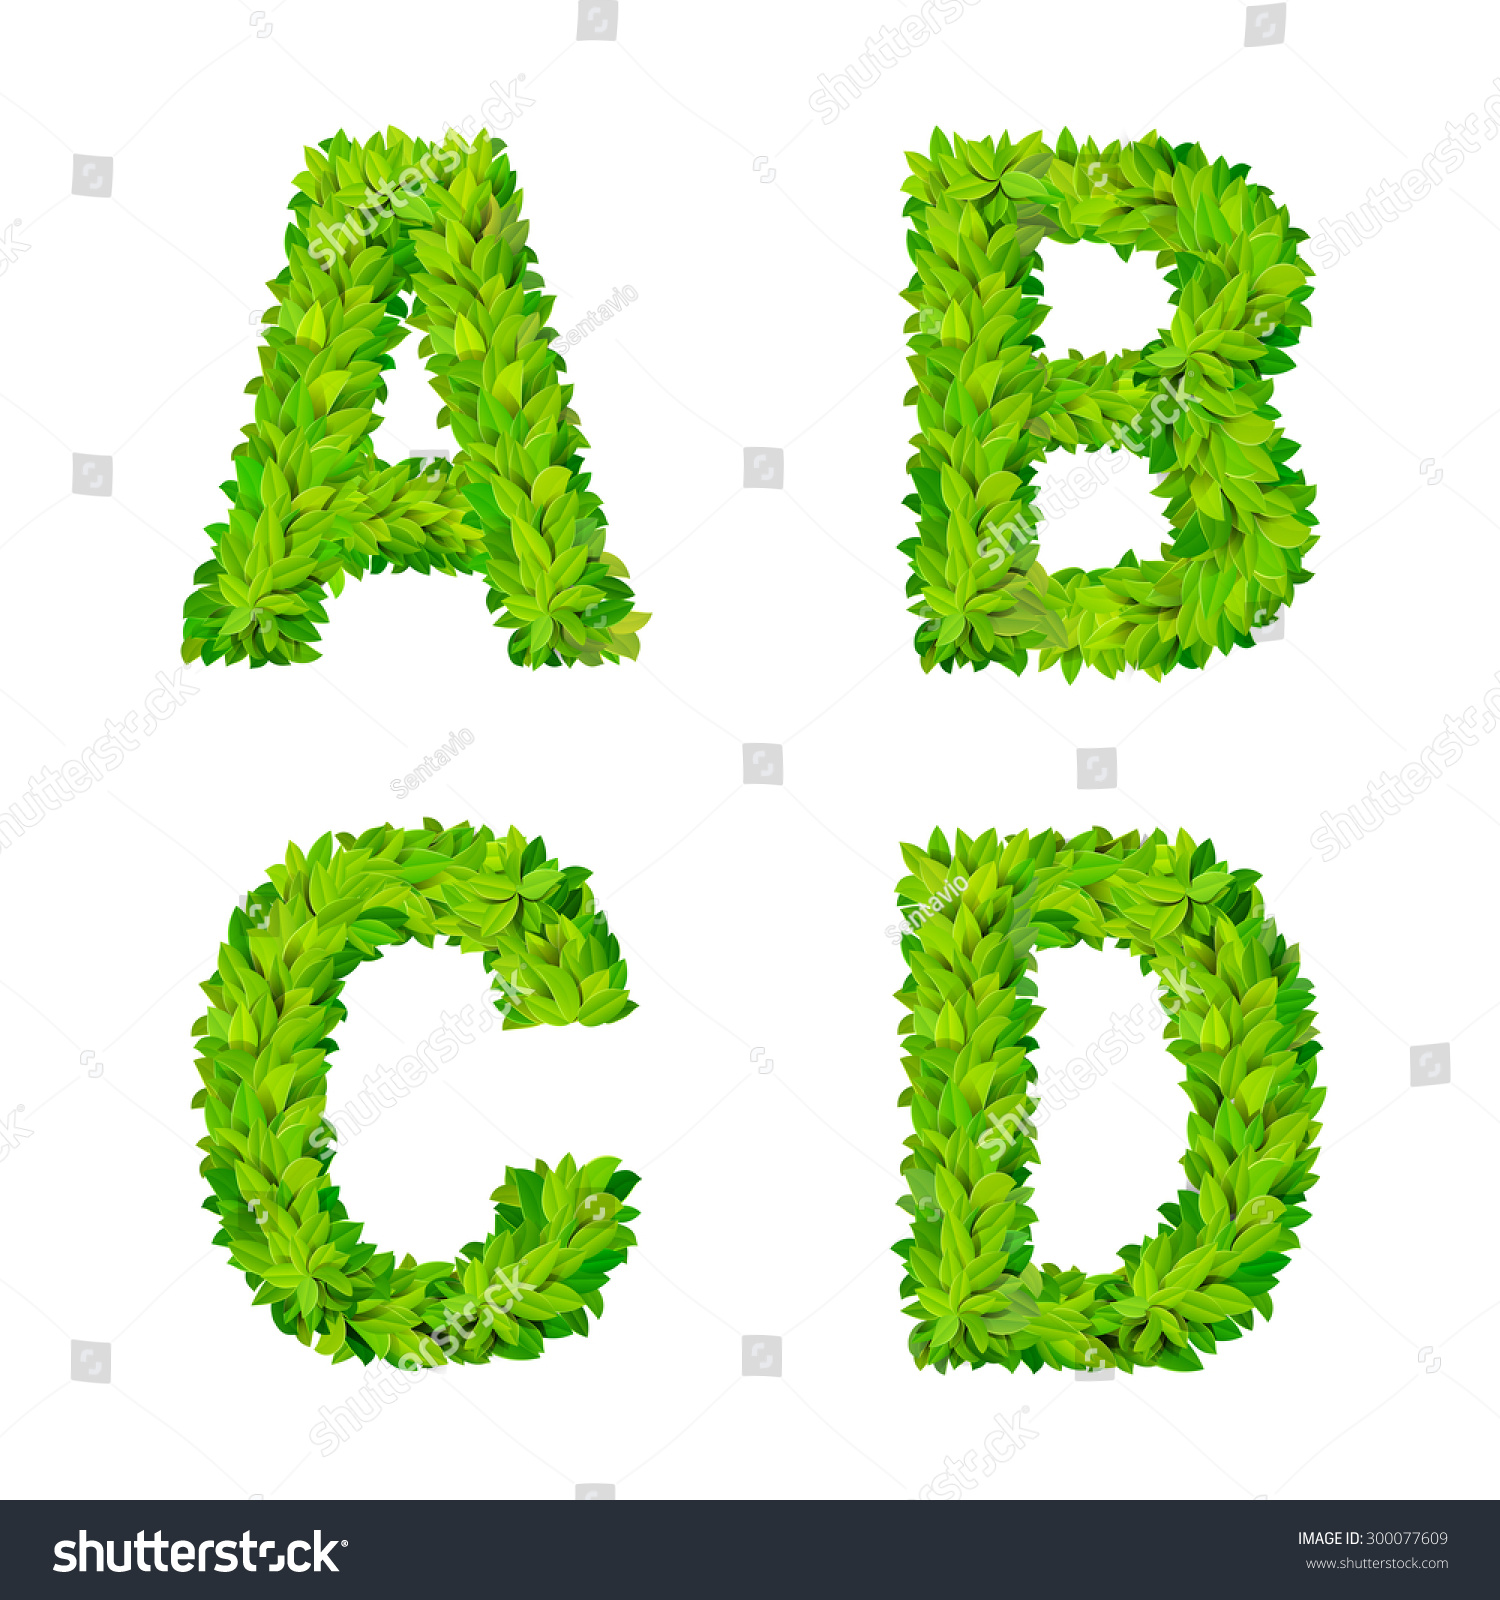 Worksheet A B C D In Vertical Letter abc glass leaves letter number elements stock vector 300077609 modern nature placard lettering leafy foliar deciduous set